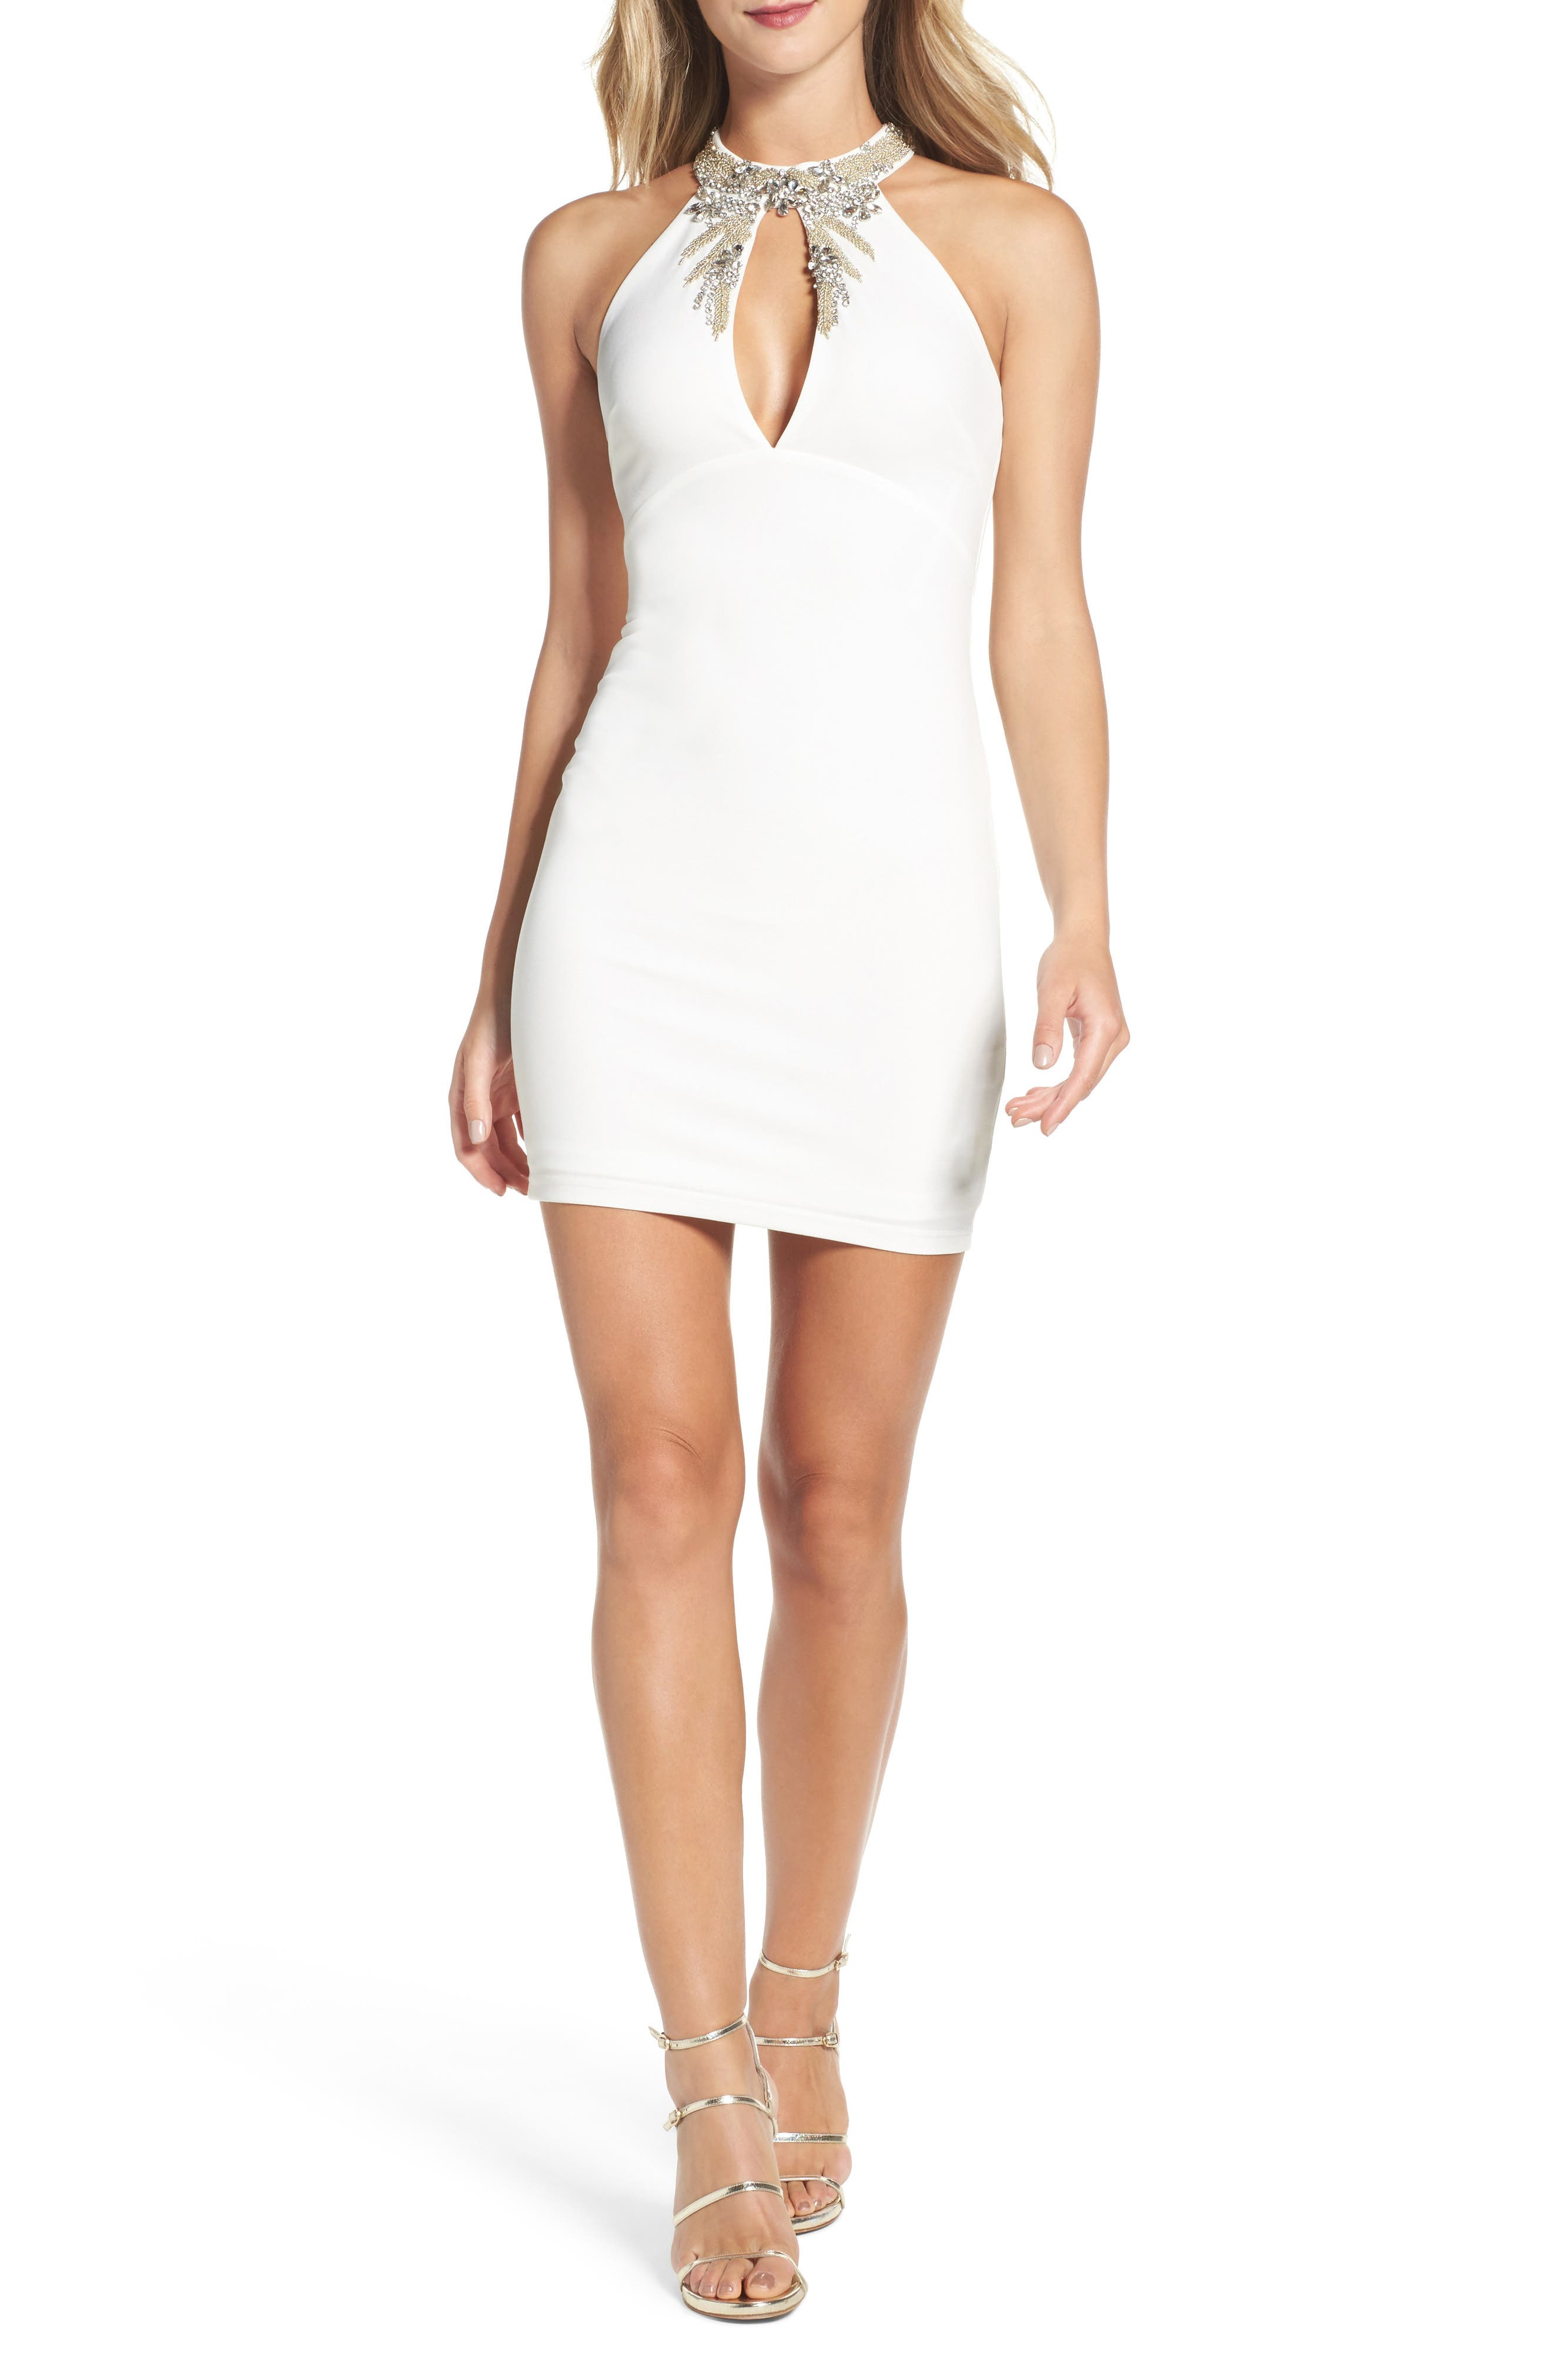 Alluring Evening Beaded Body-Con Dress,                         Main,                         color, White